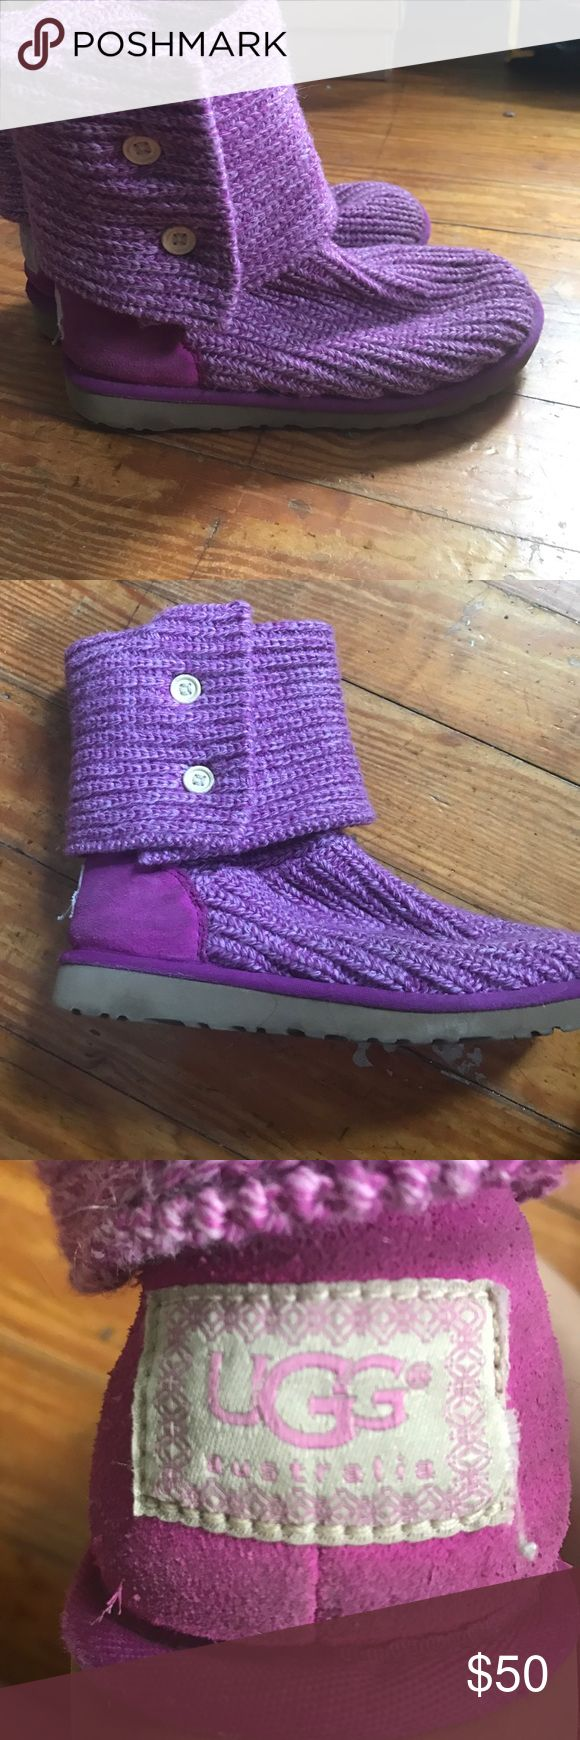 Knit kids uggs in the color cactus flower Preowned Cactus flower colored knot uggs for kids size 4 UGG Shoes Boots